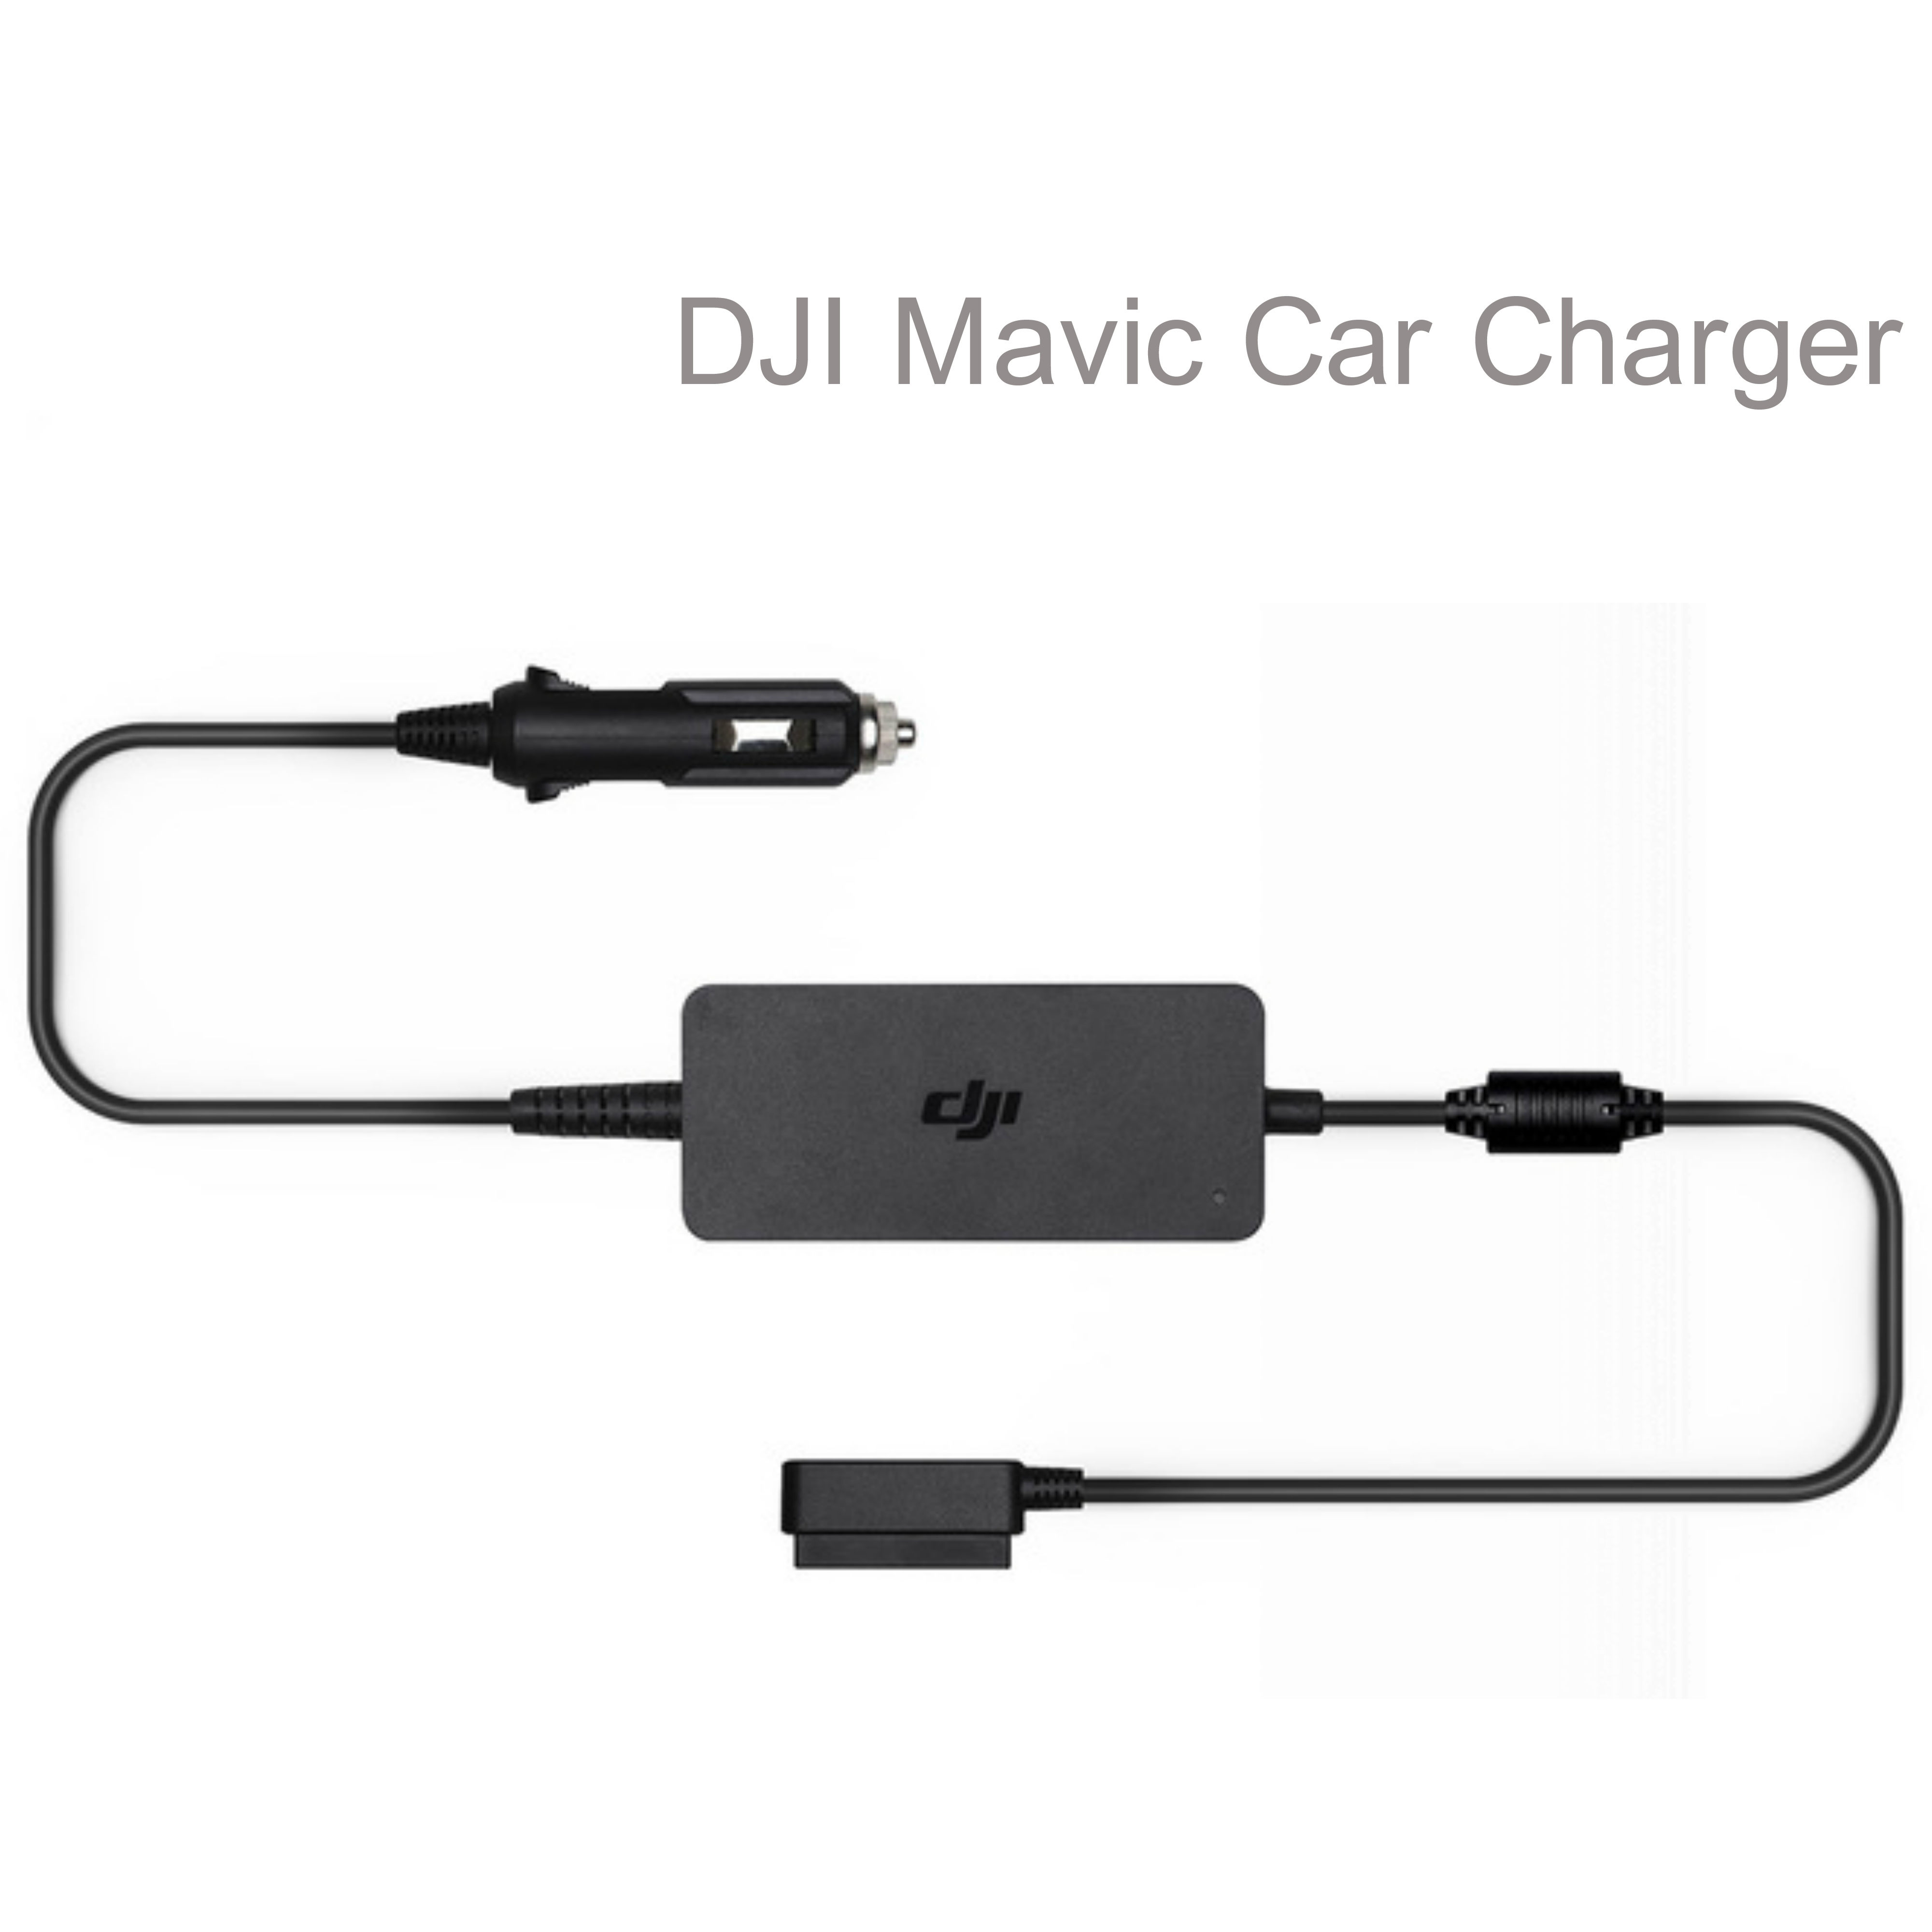 DJI CP.PT.000562|Mavic Pro Car Charger|Charge In 54-Minute|Low Voltage Protection